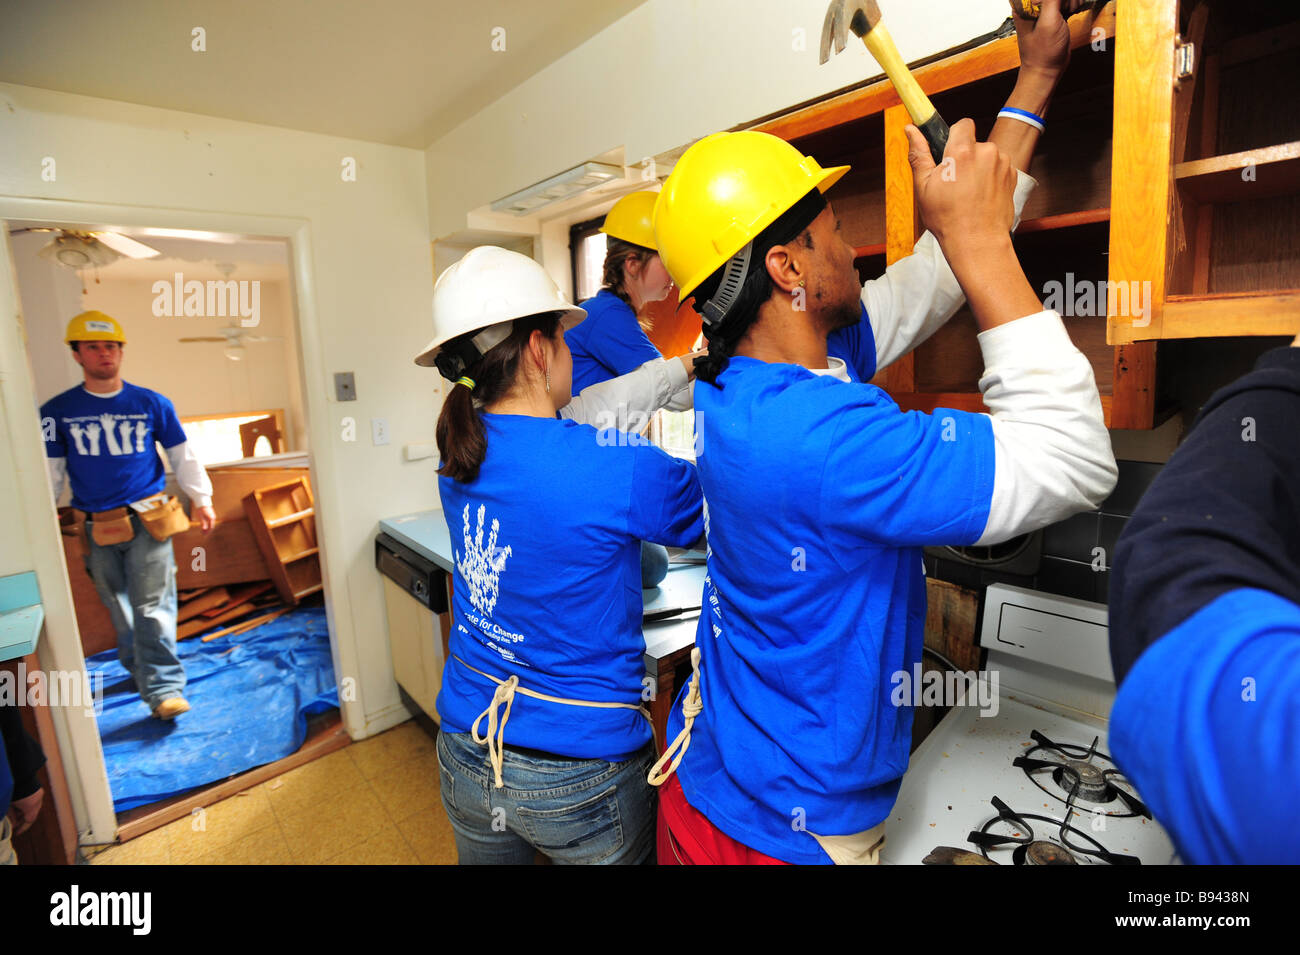 College volunteers work on renovating a house with the non-profit group, Habitat for Humanity-Silver Spring, Maryland Stock Photo